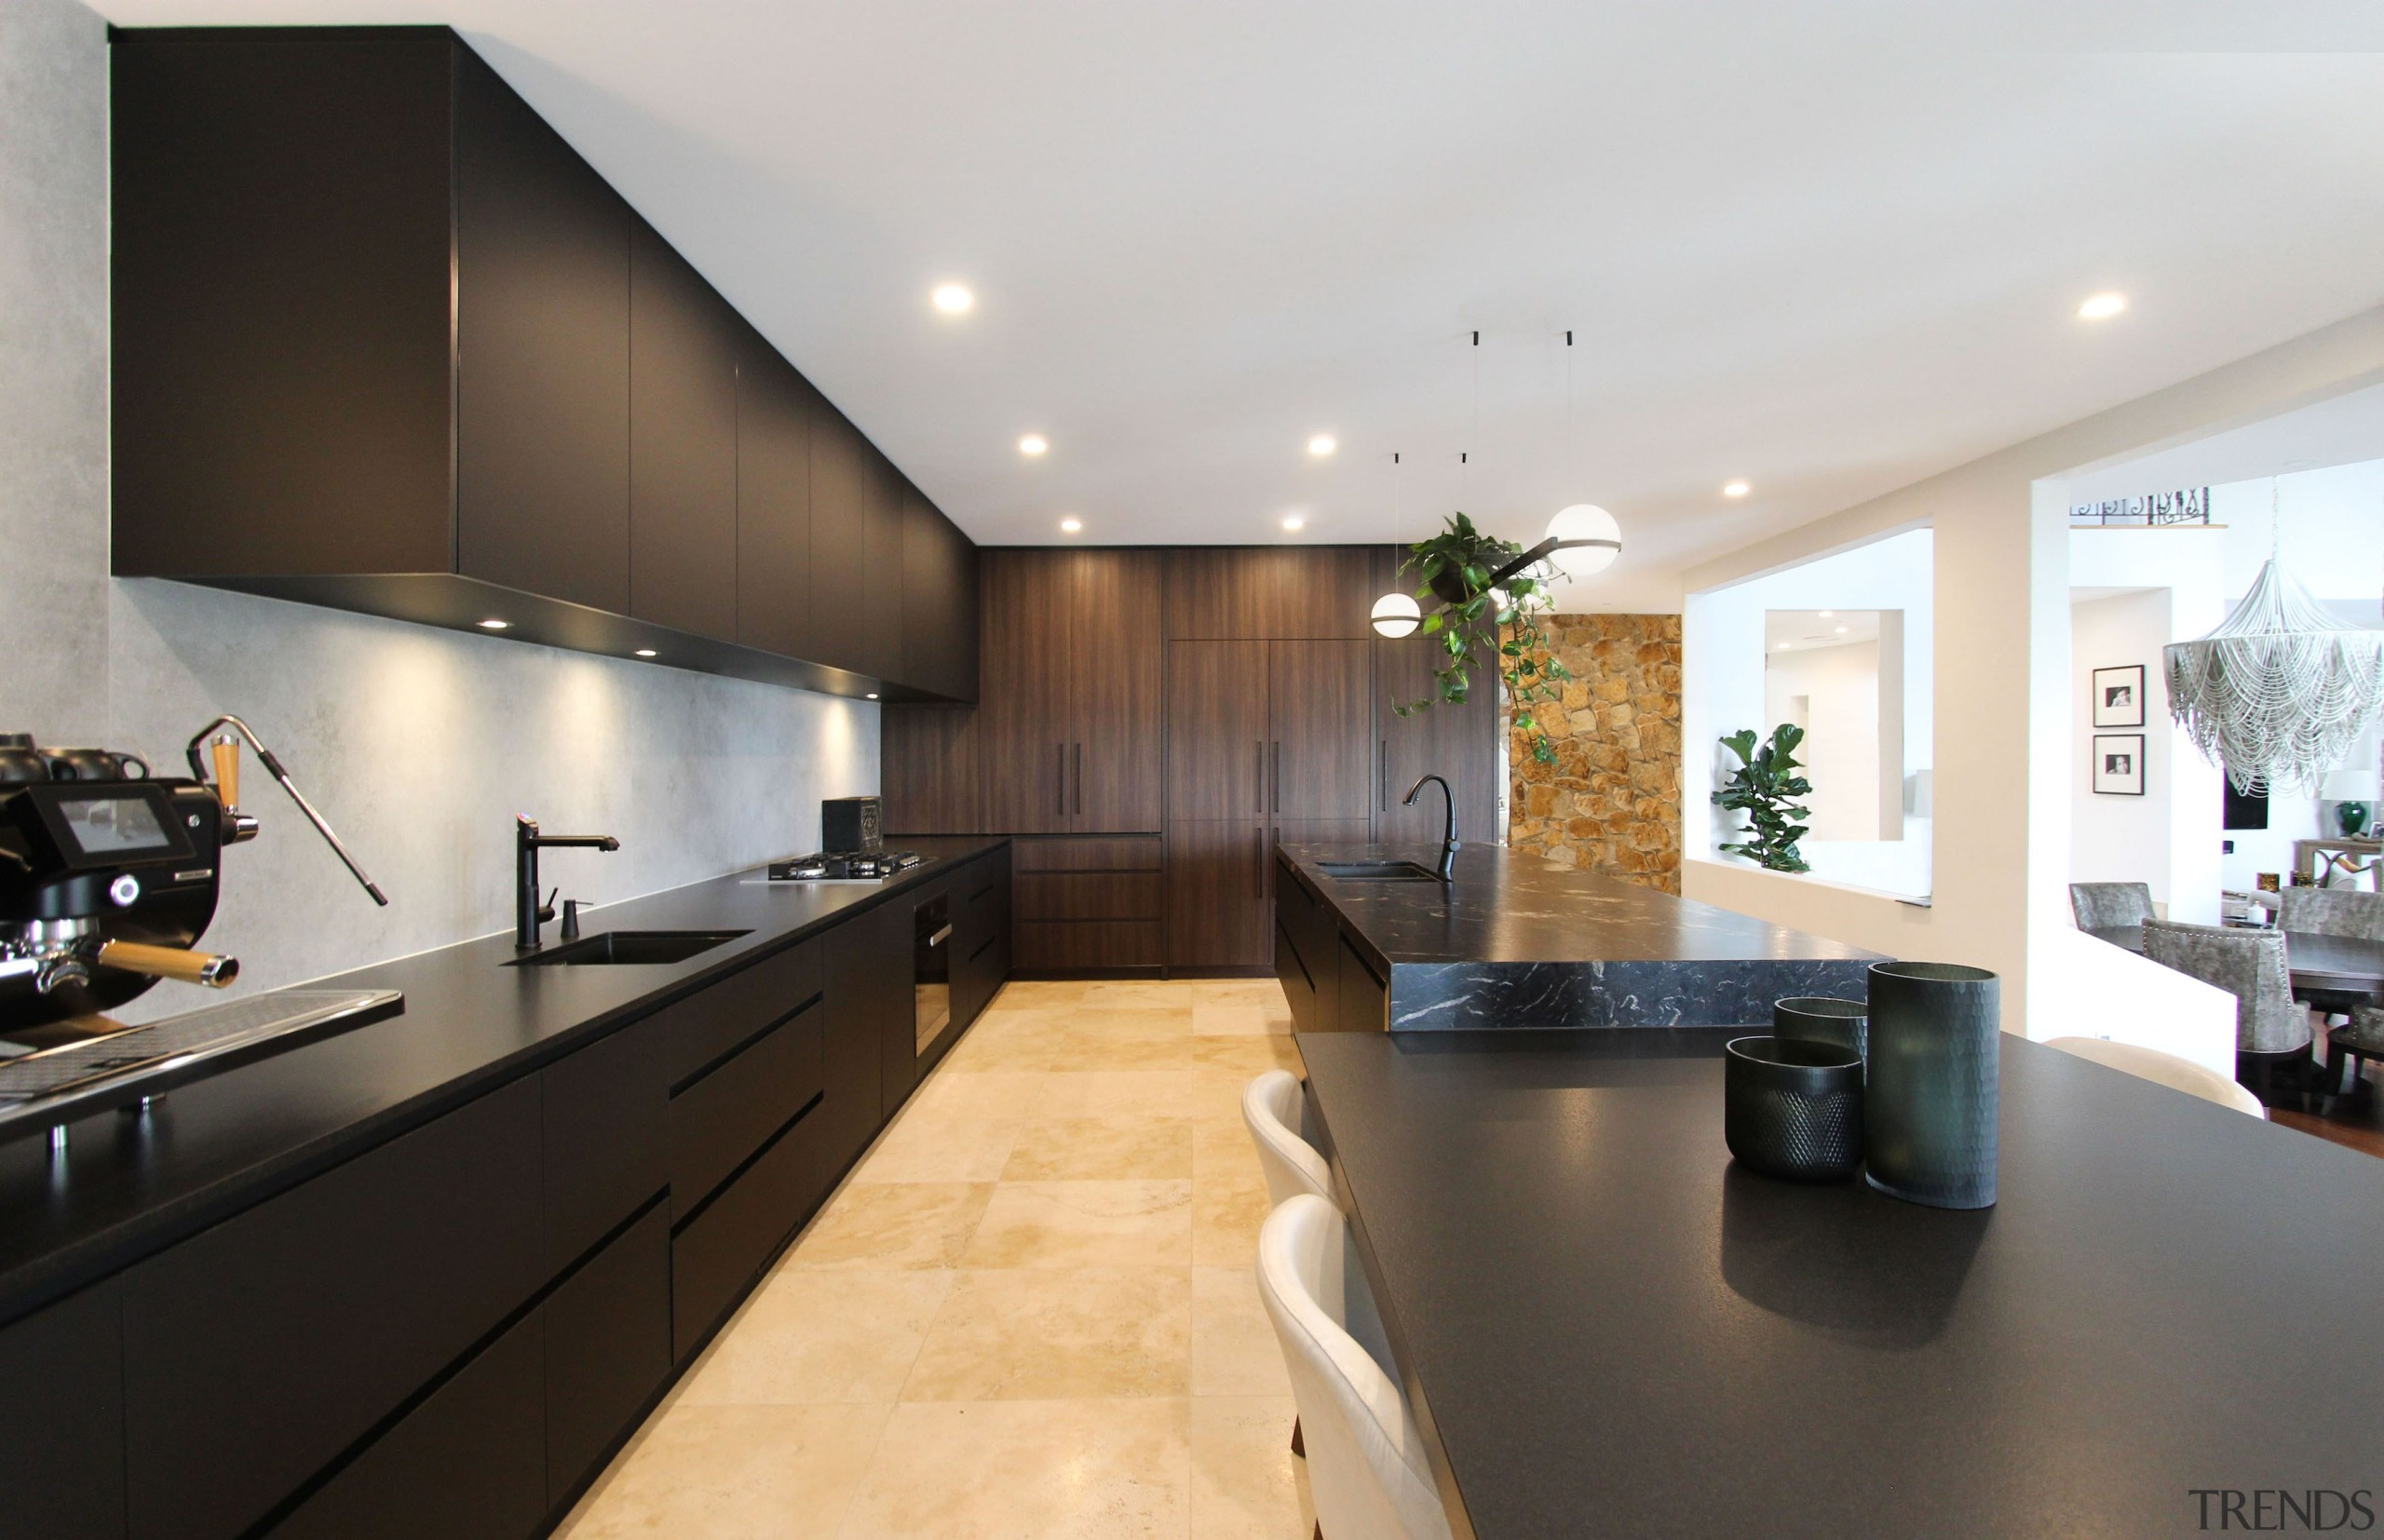 Equipped with cutting-edge fixtures and appliances, this renovation